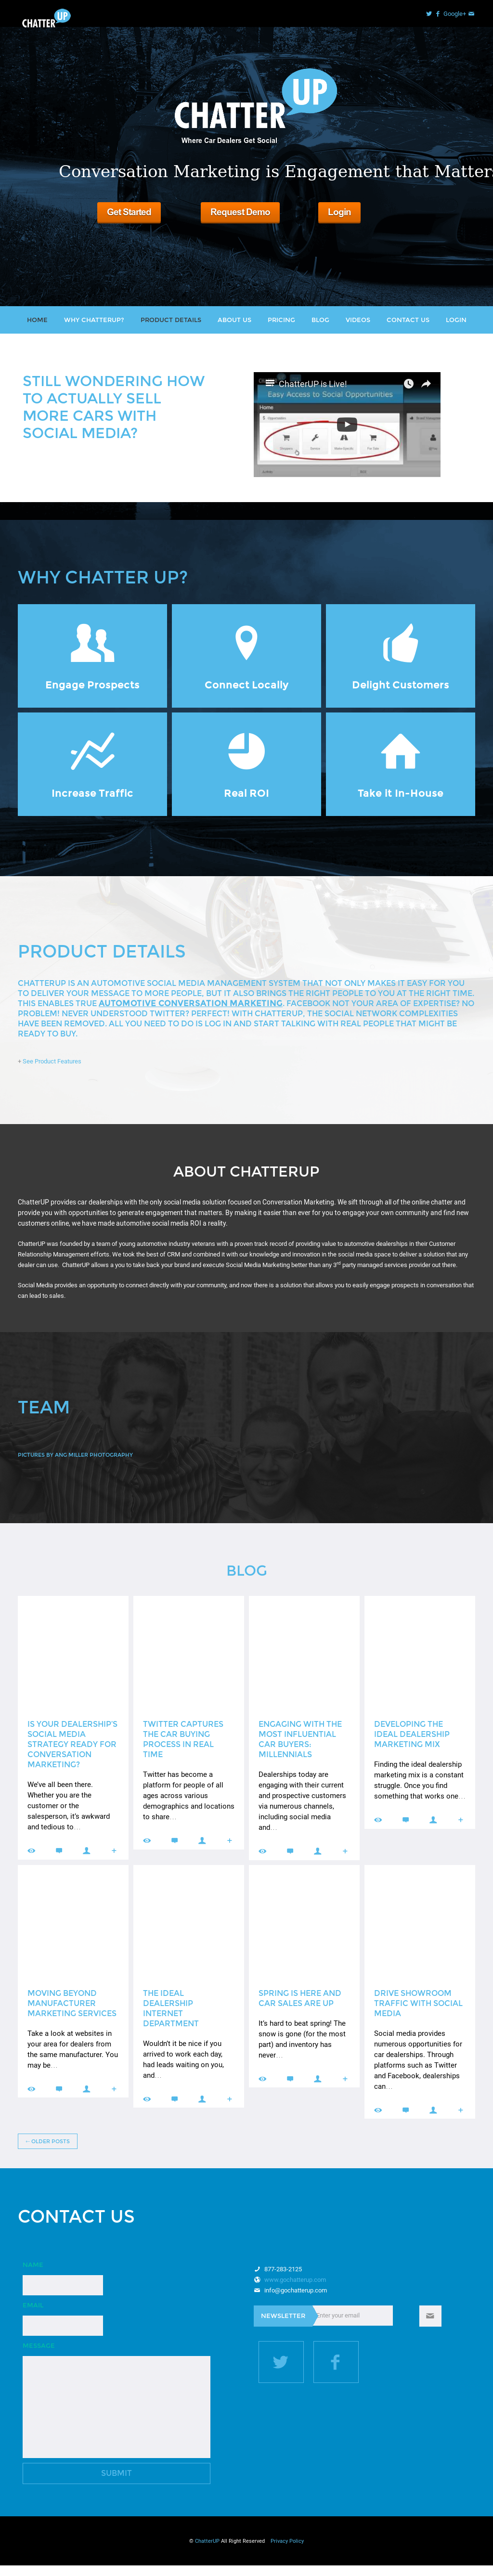 ChatterUP Competitors, Revenue and Employees - Owler Company Profile